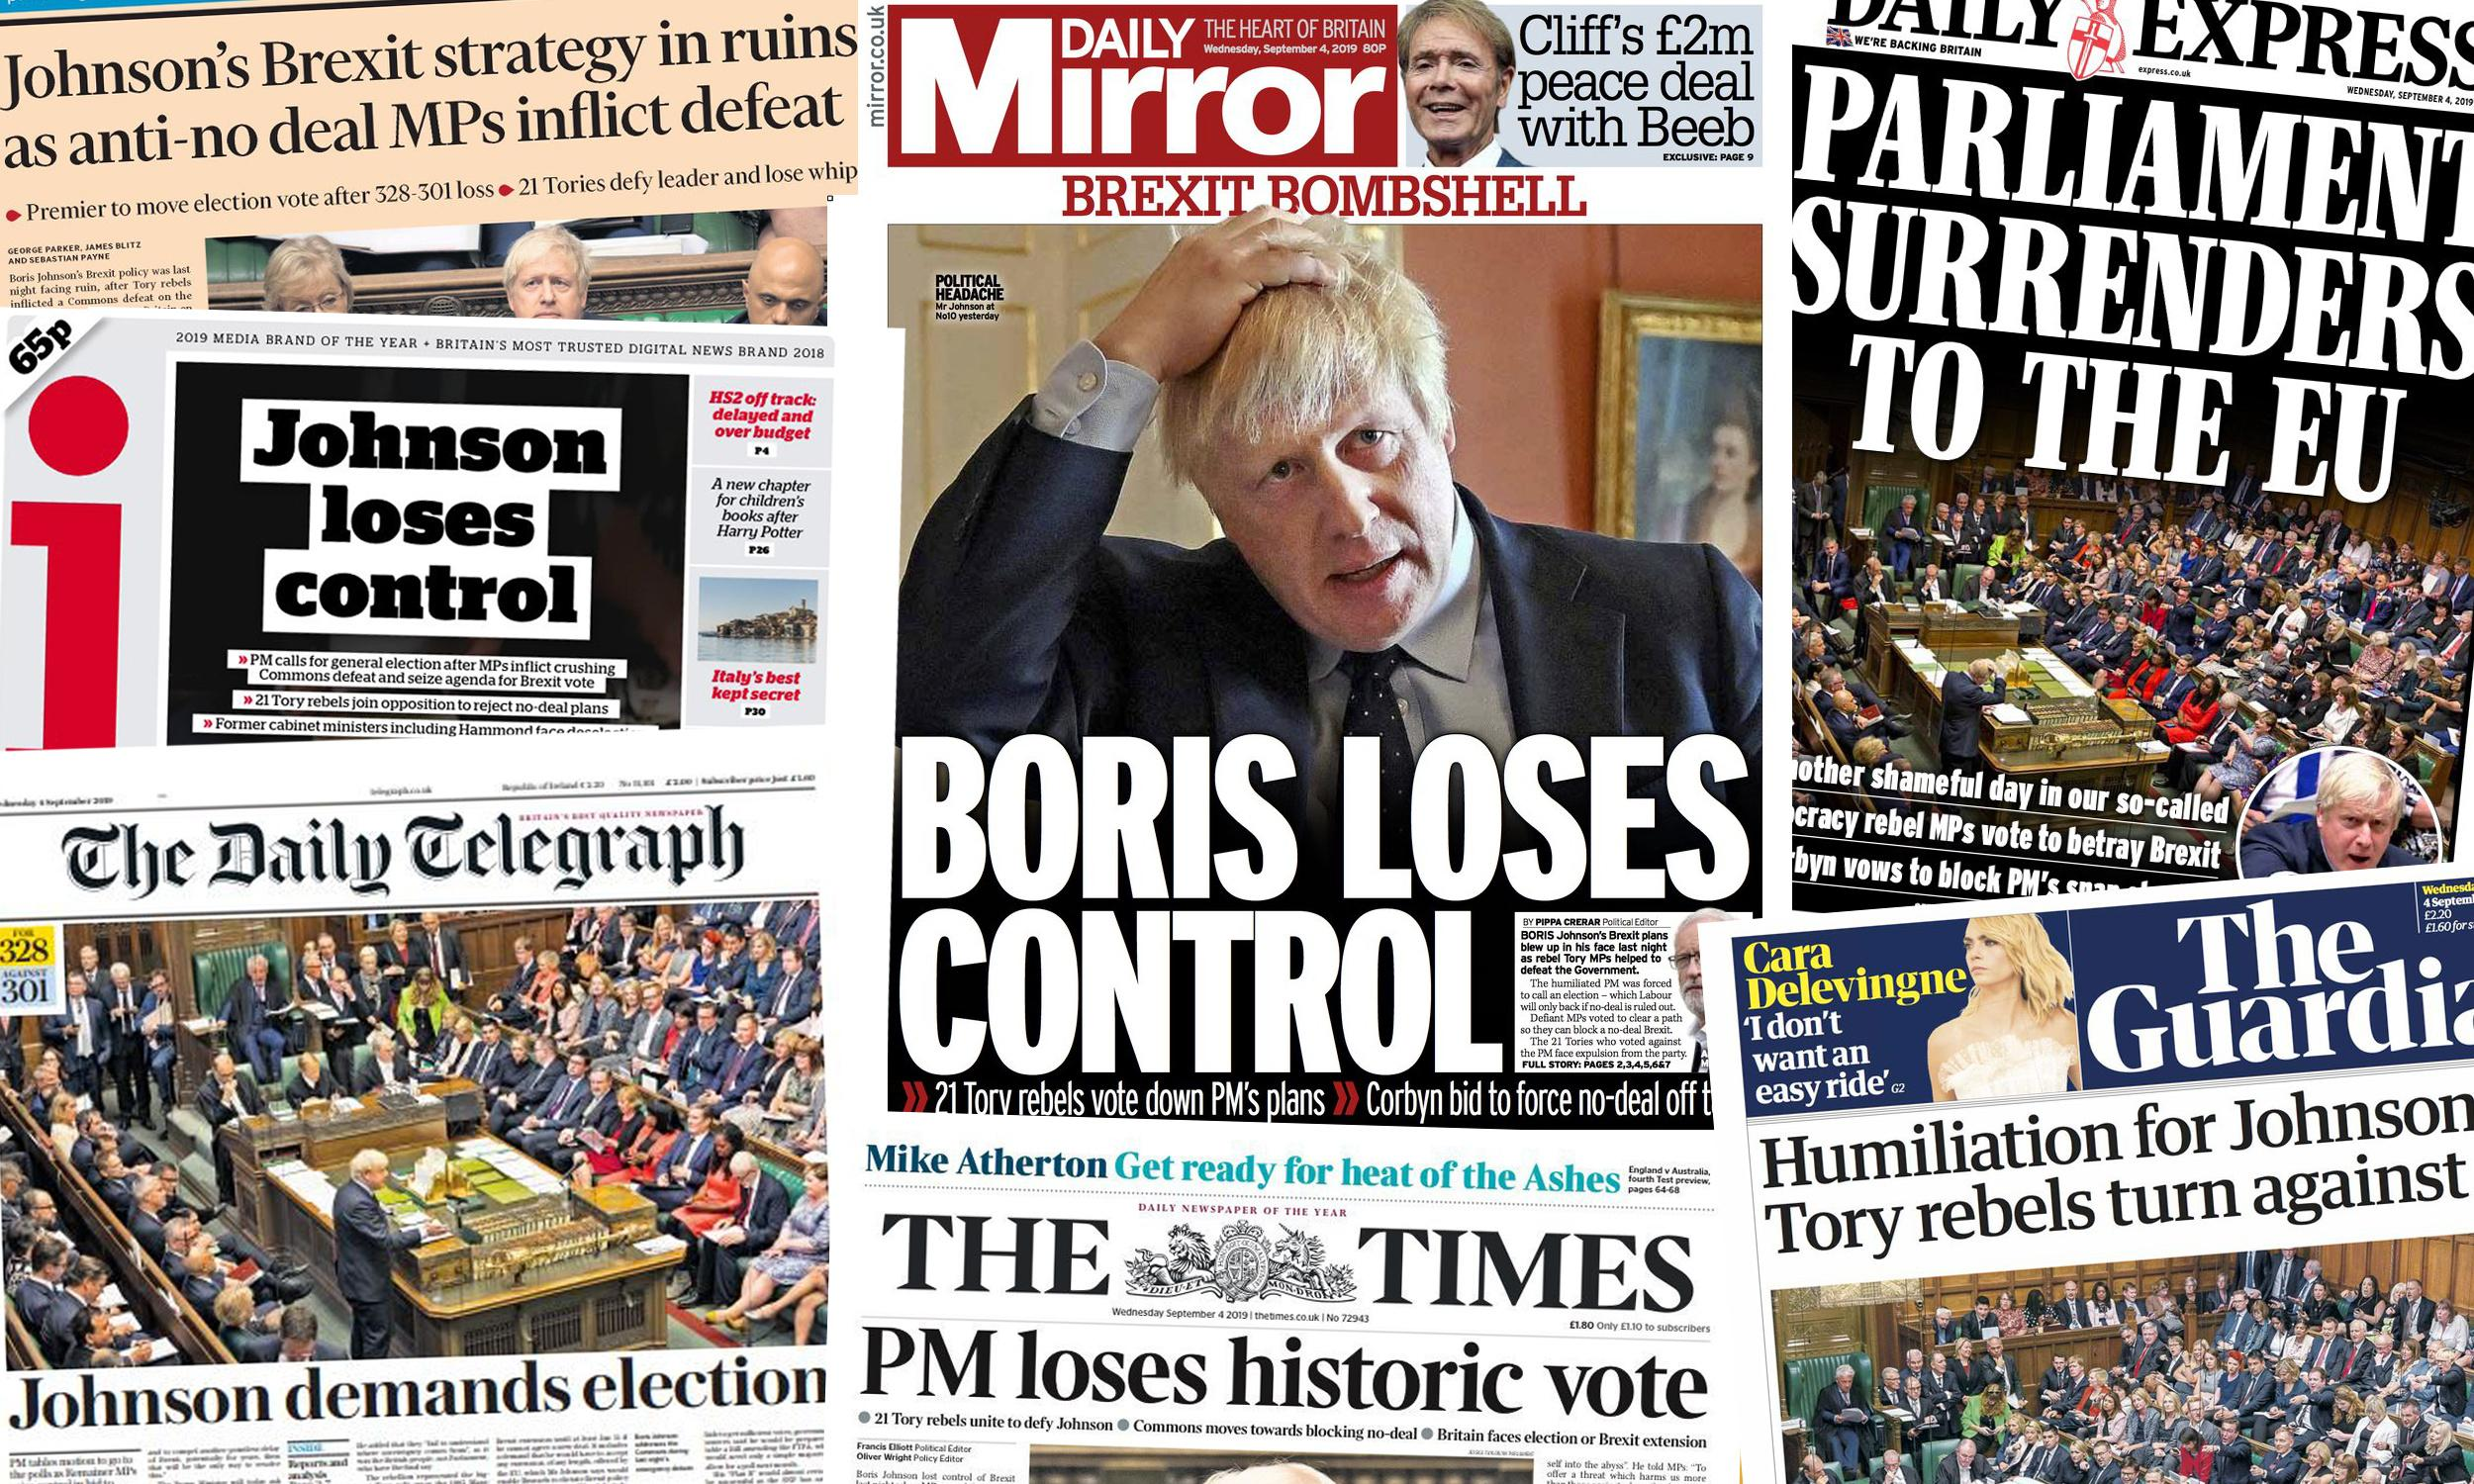 'Johnson loses control': how the papers covered the historic Commons defeat